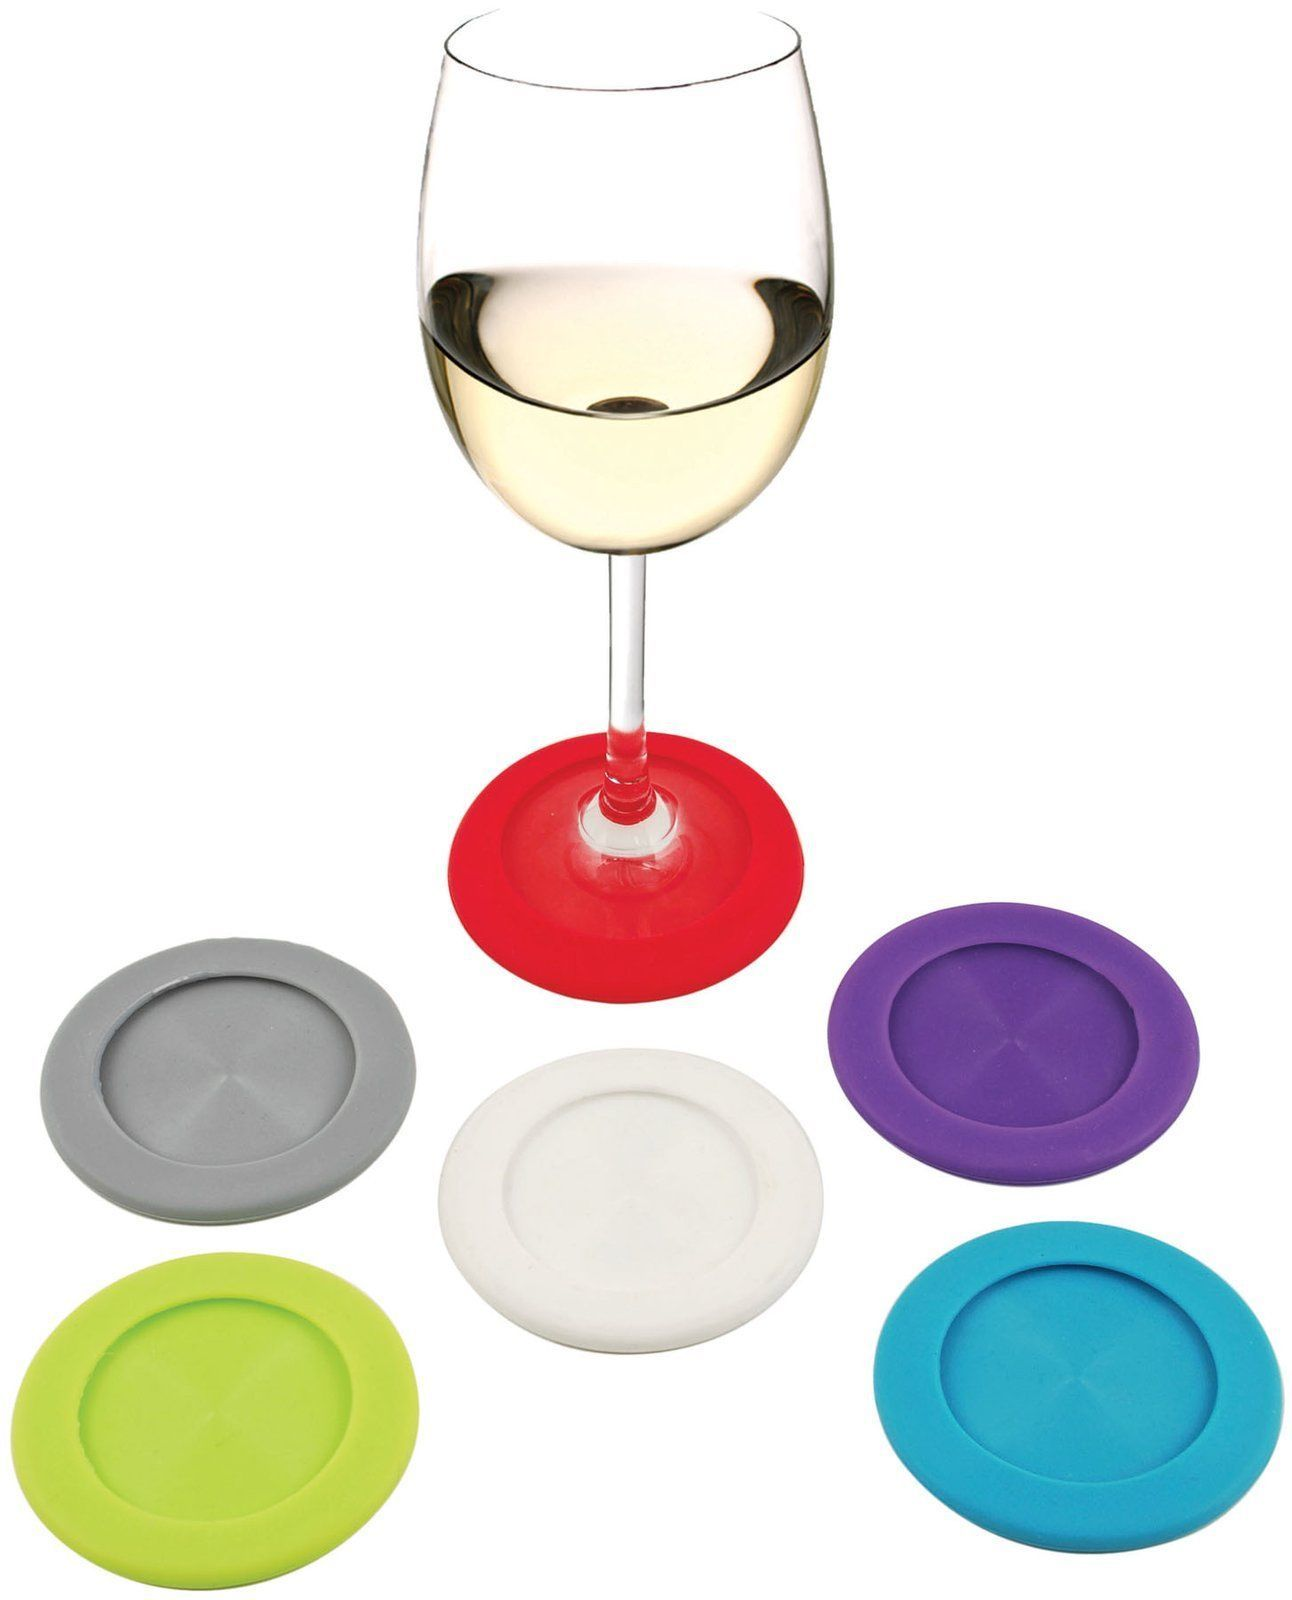 Details About True Fabrications Grab Go Slip On Silicone Wine Glass Coasters Drink Markers Silicone Coasters Drink Marker Wine Glass Markers